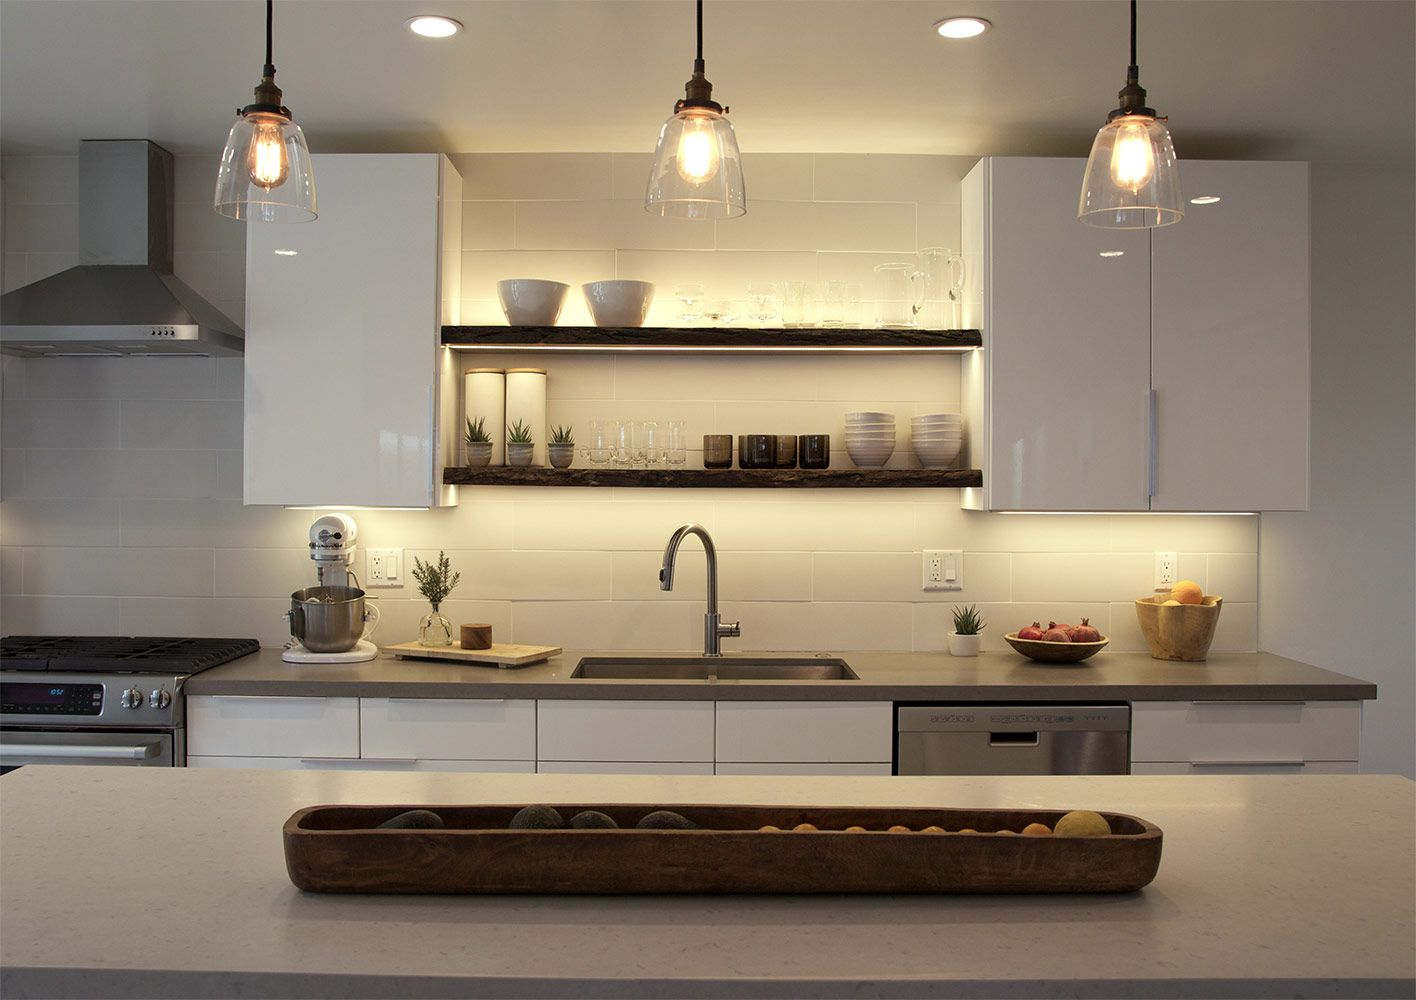 Under Cabinet Lighting Gives This Kitchen A Modern And Elegant